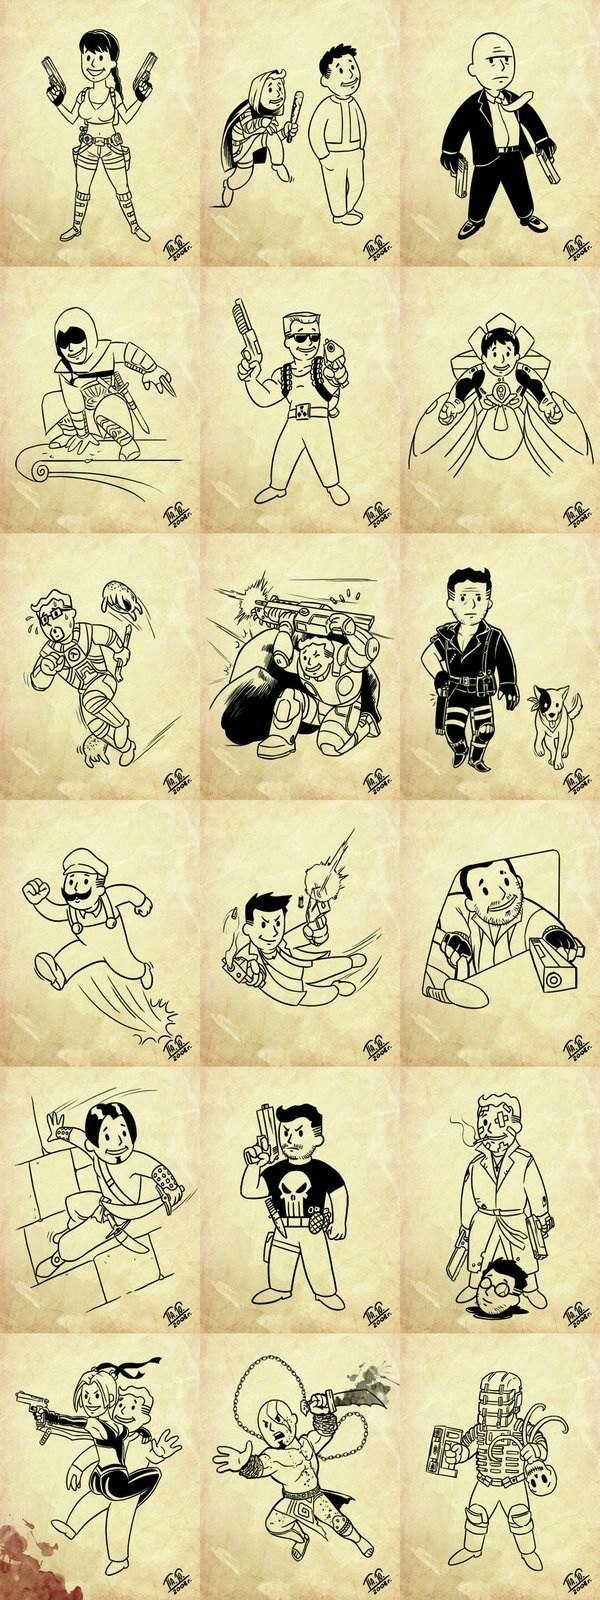 Characters from games